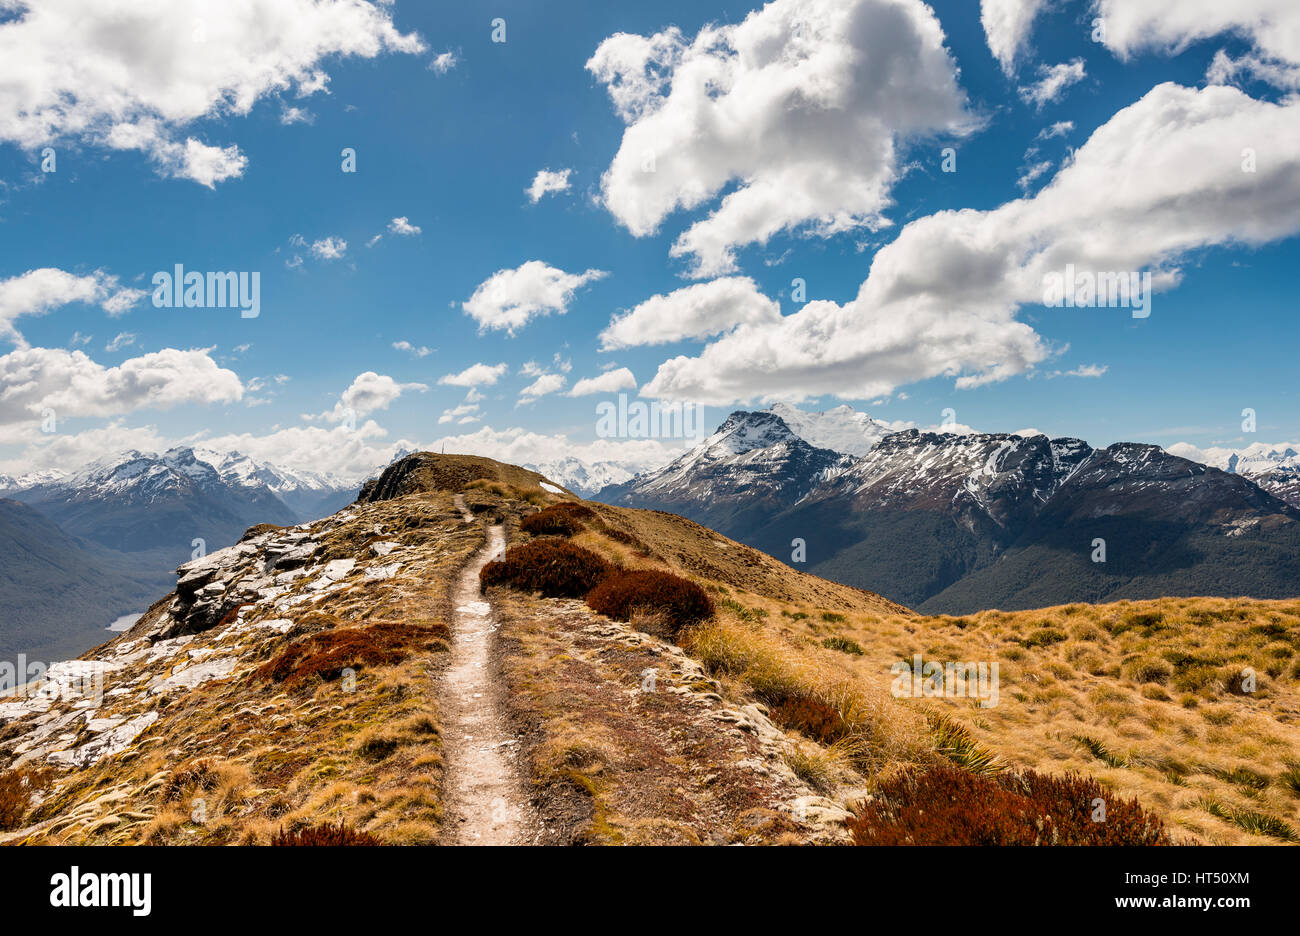 Hiking trail, Mount Alfred, Glenorchy at Queenstown, Southern Alps, Otago, Southland, New Zealand - Stock Image